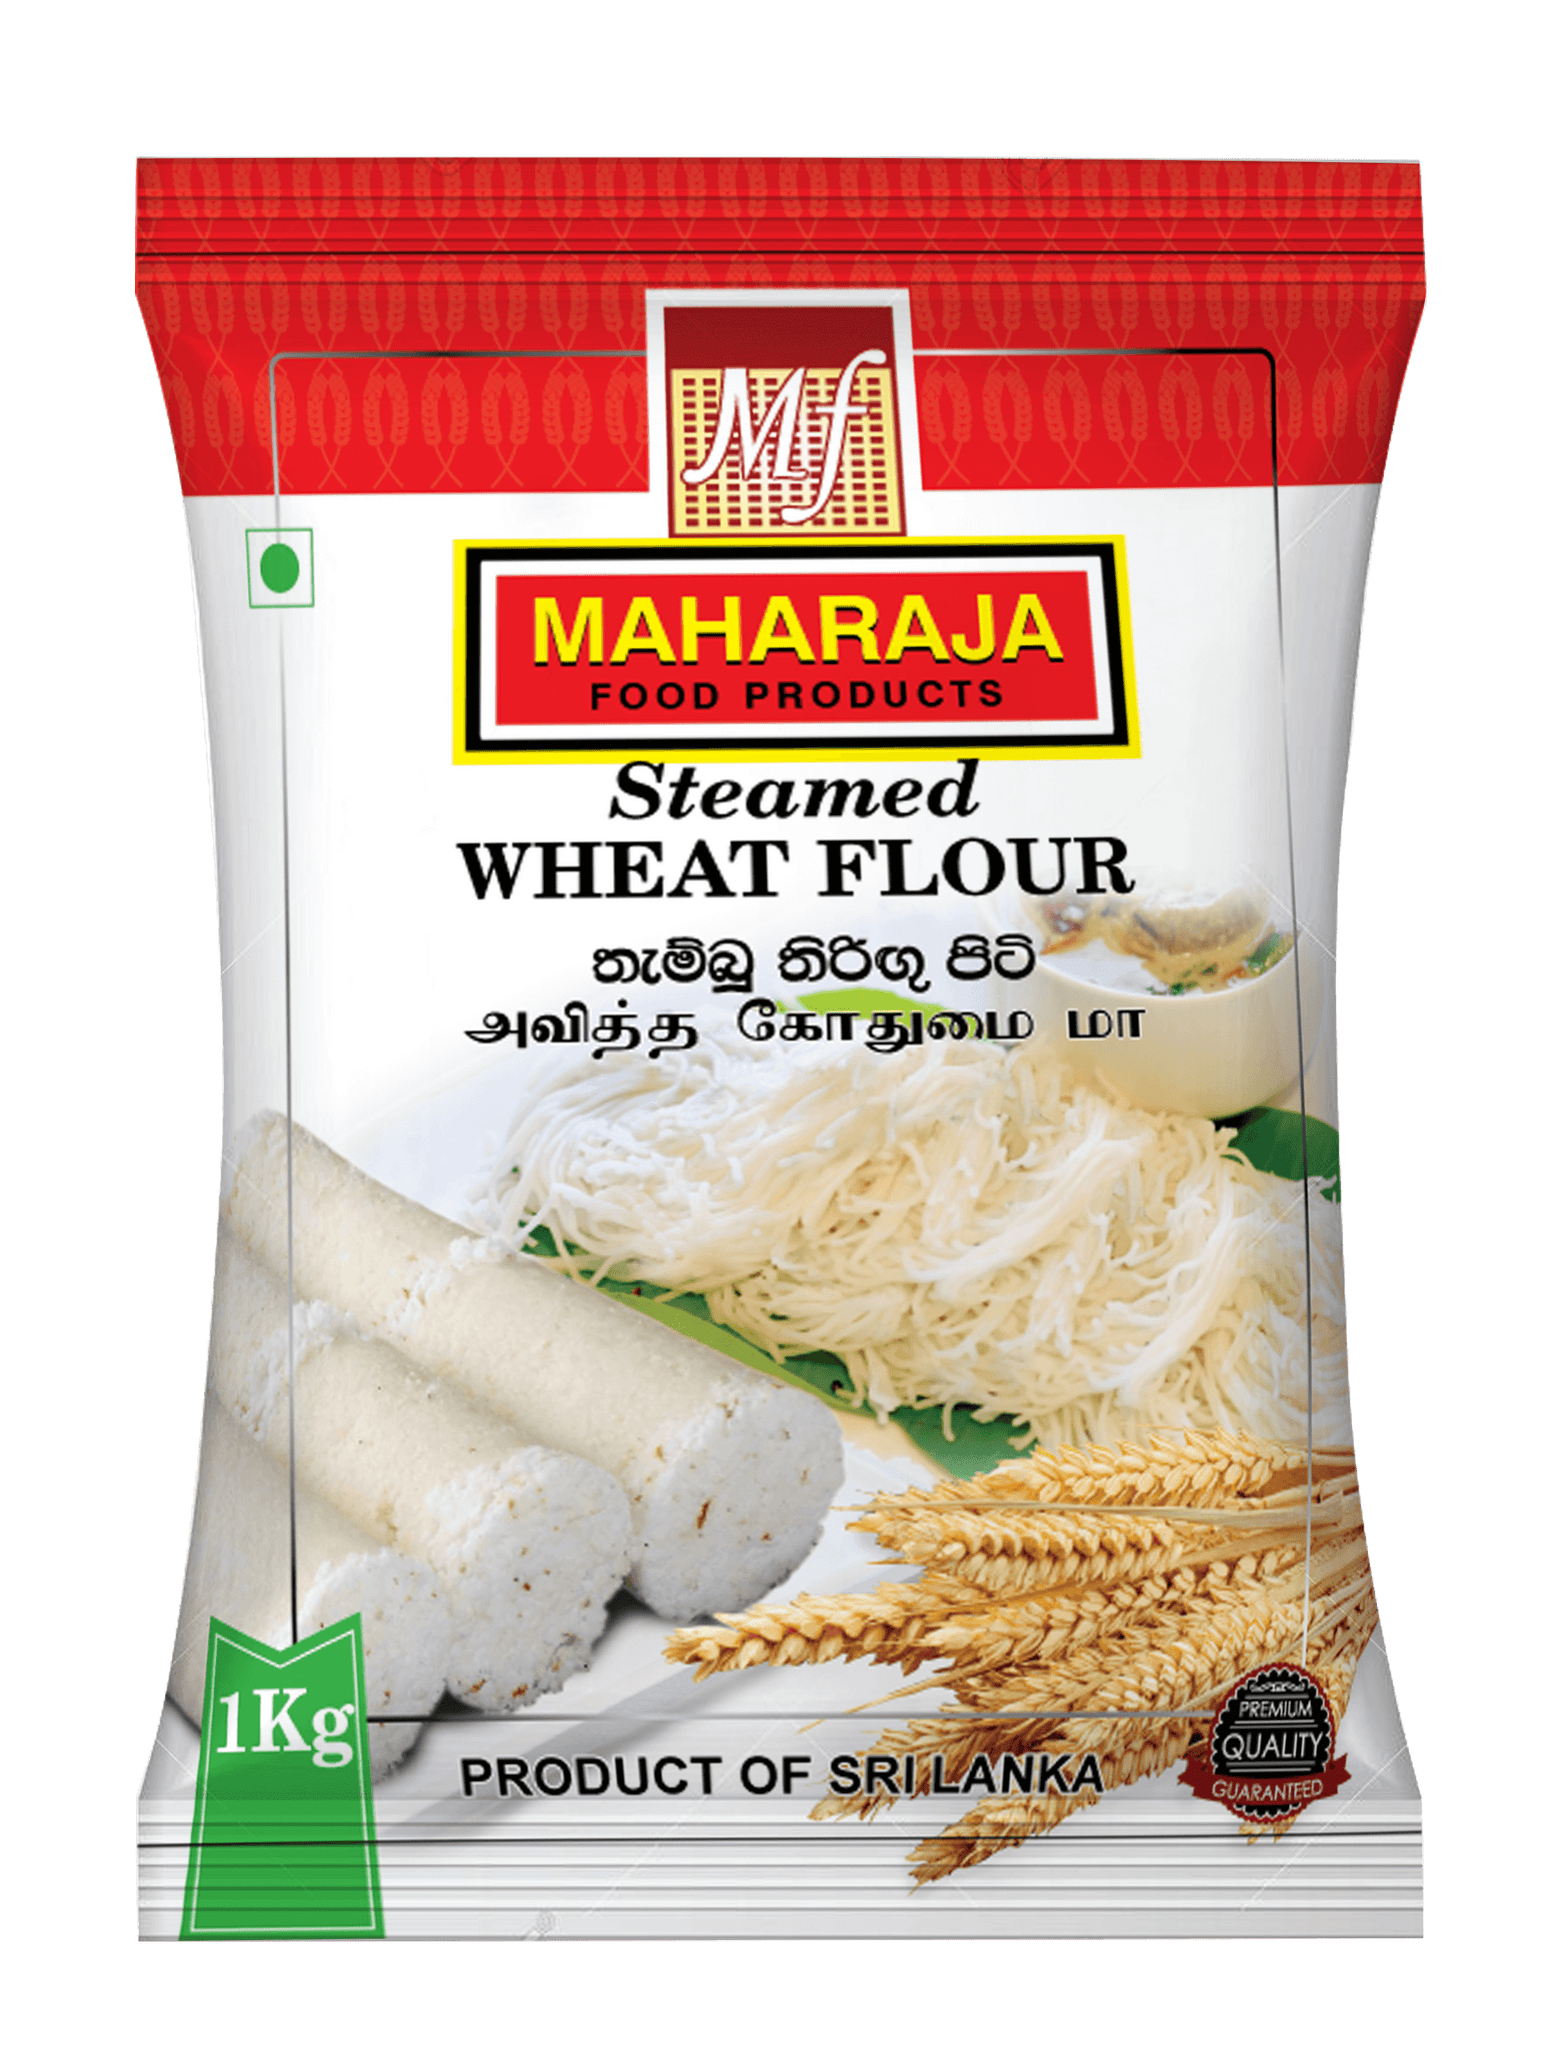 Steamed Wheat Flour